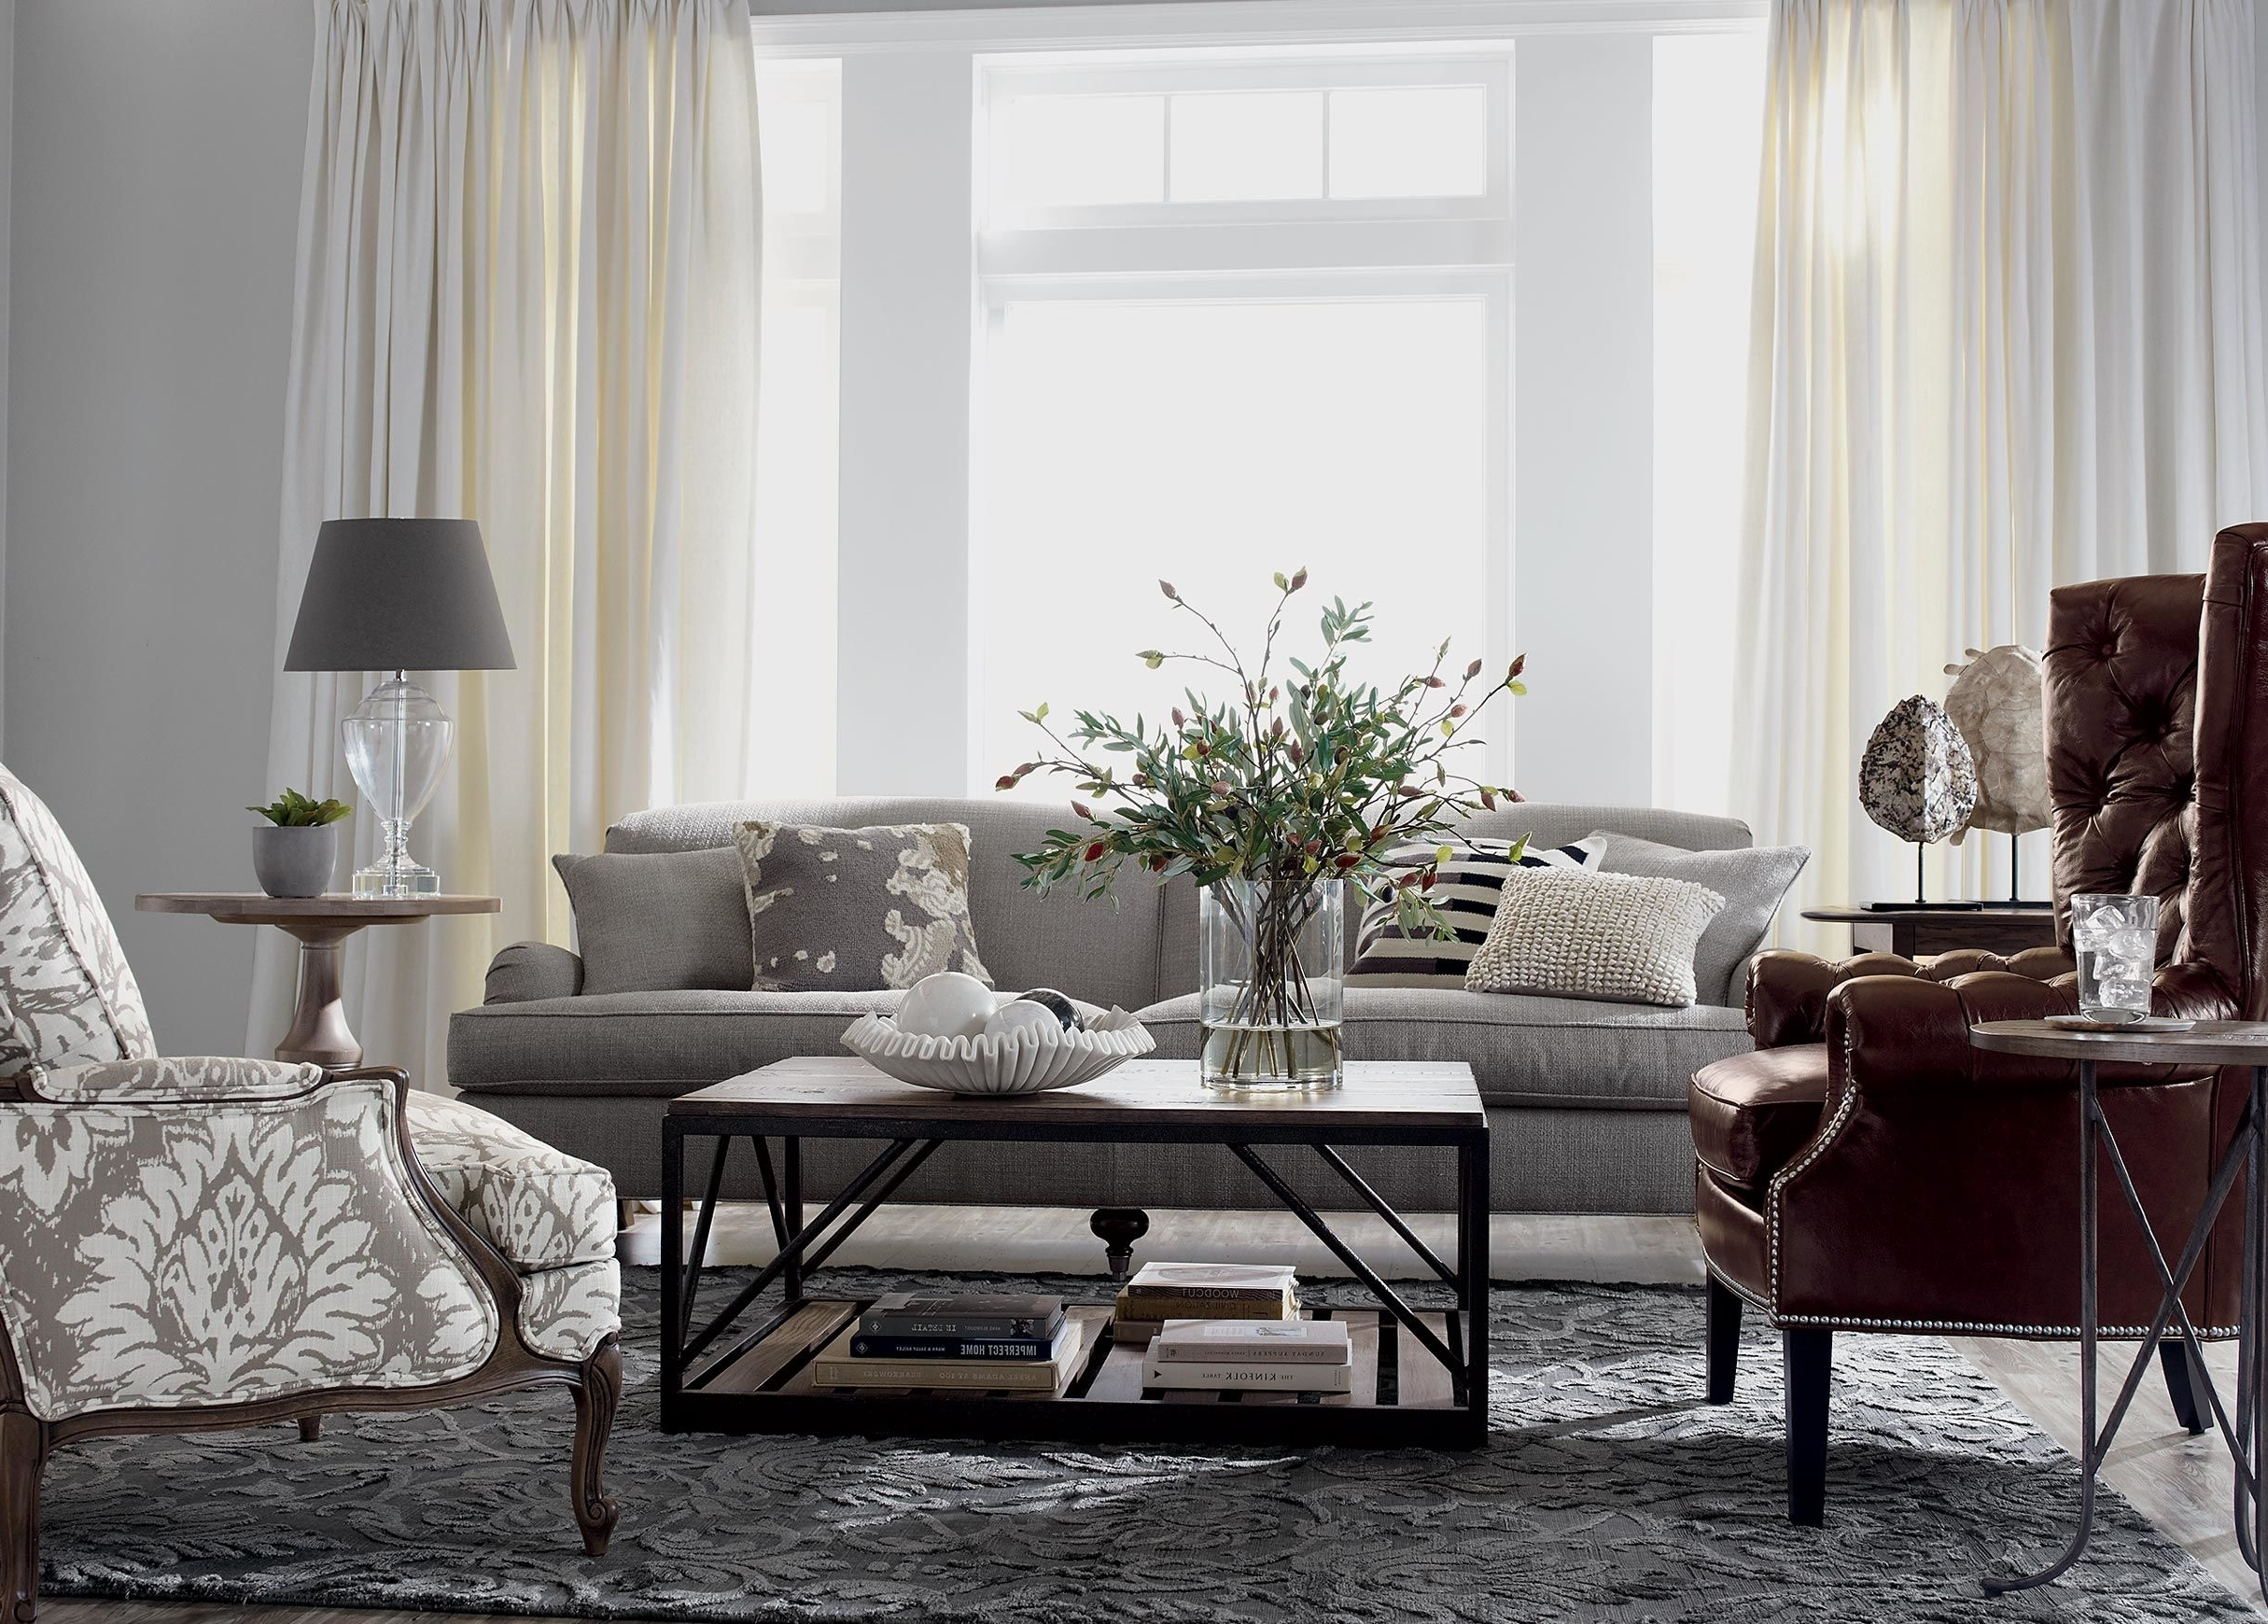 Ethan Allen Sofas And Chairs Regarding 2018 Sofas: Ethan Allen Sofa Beds (View 17 of 20)